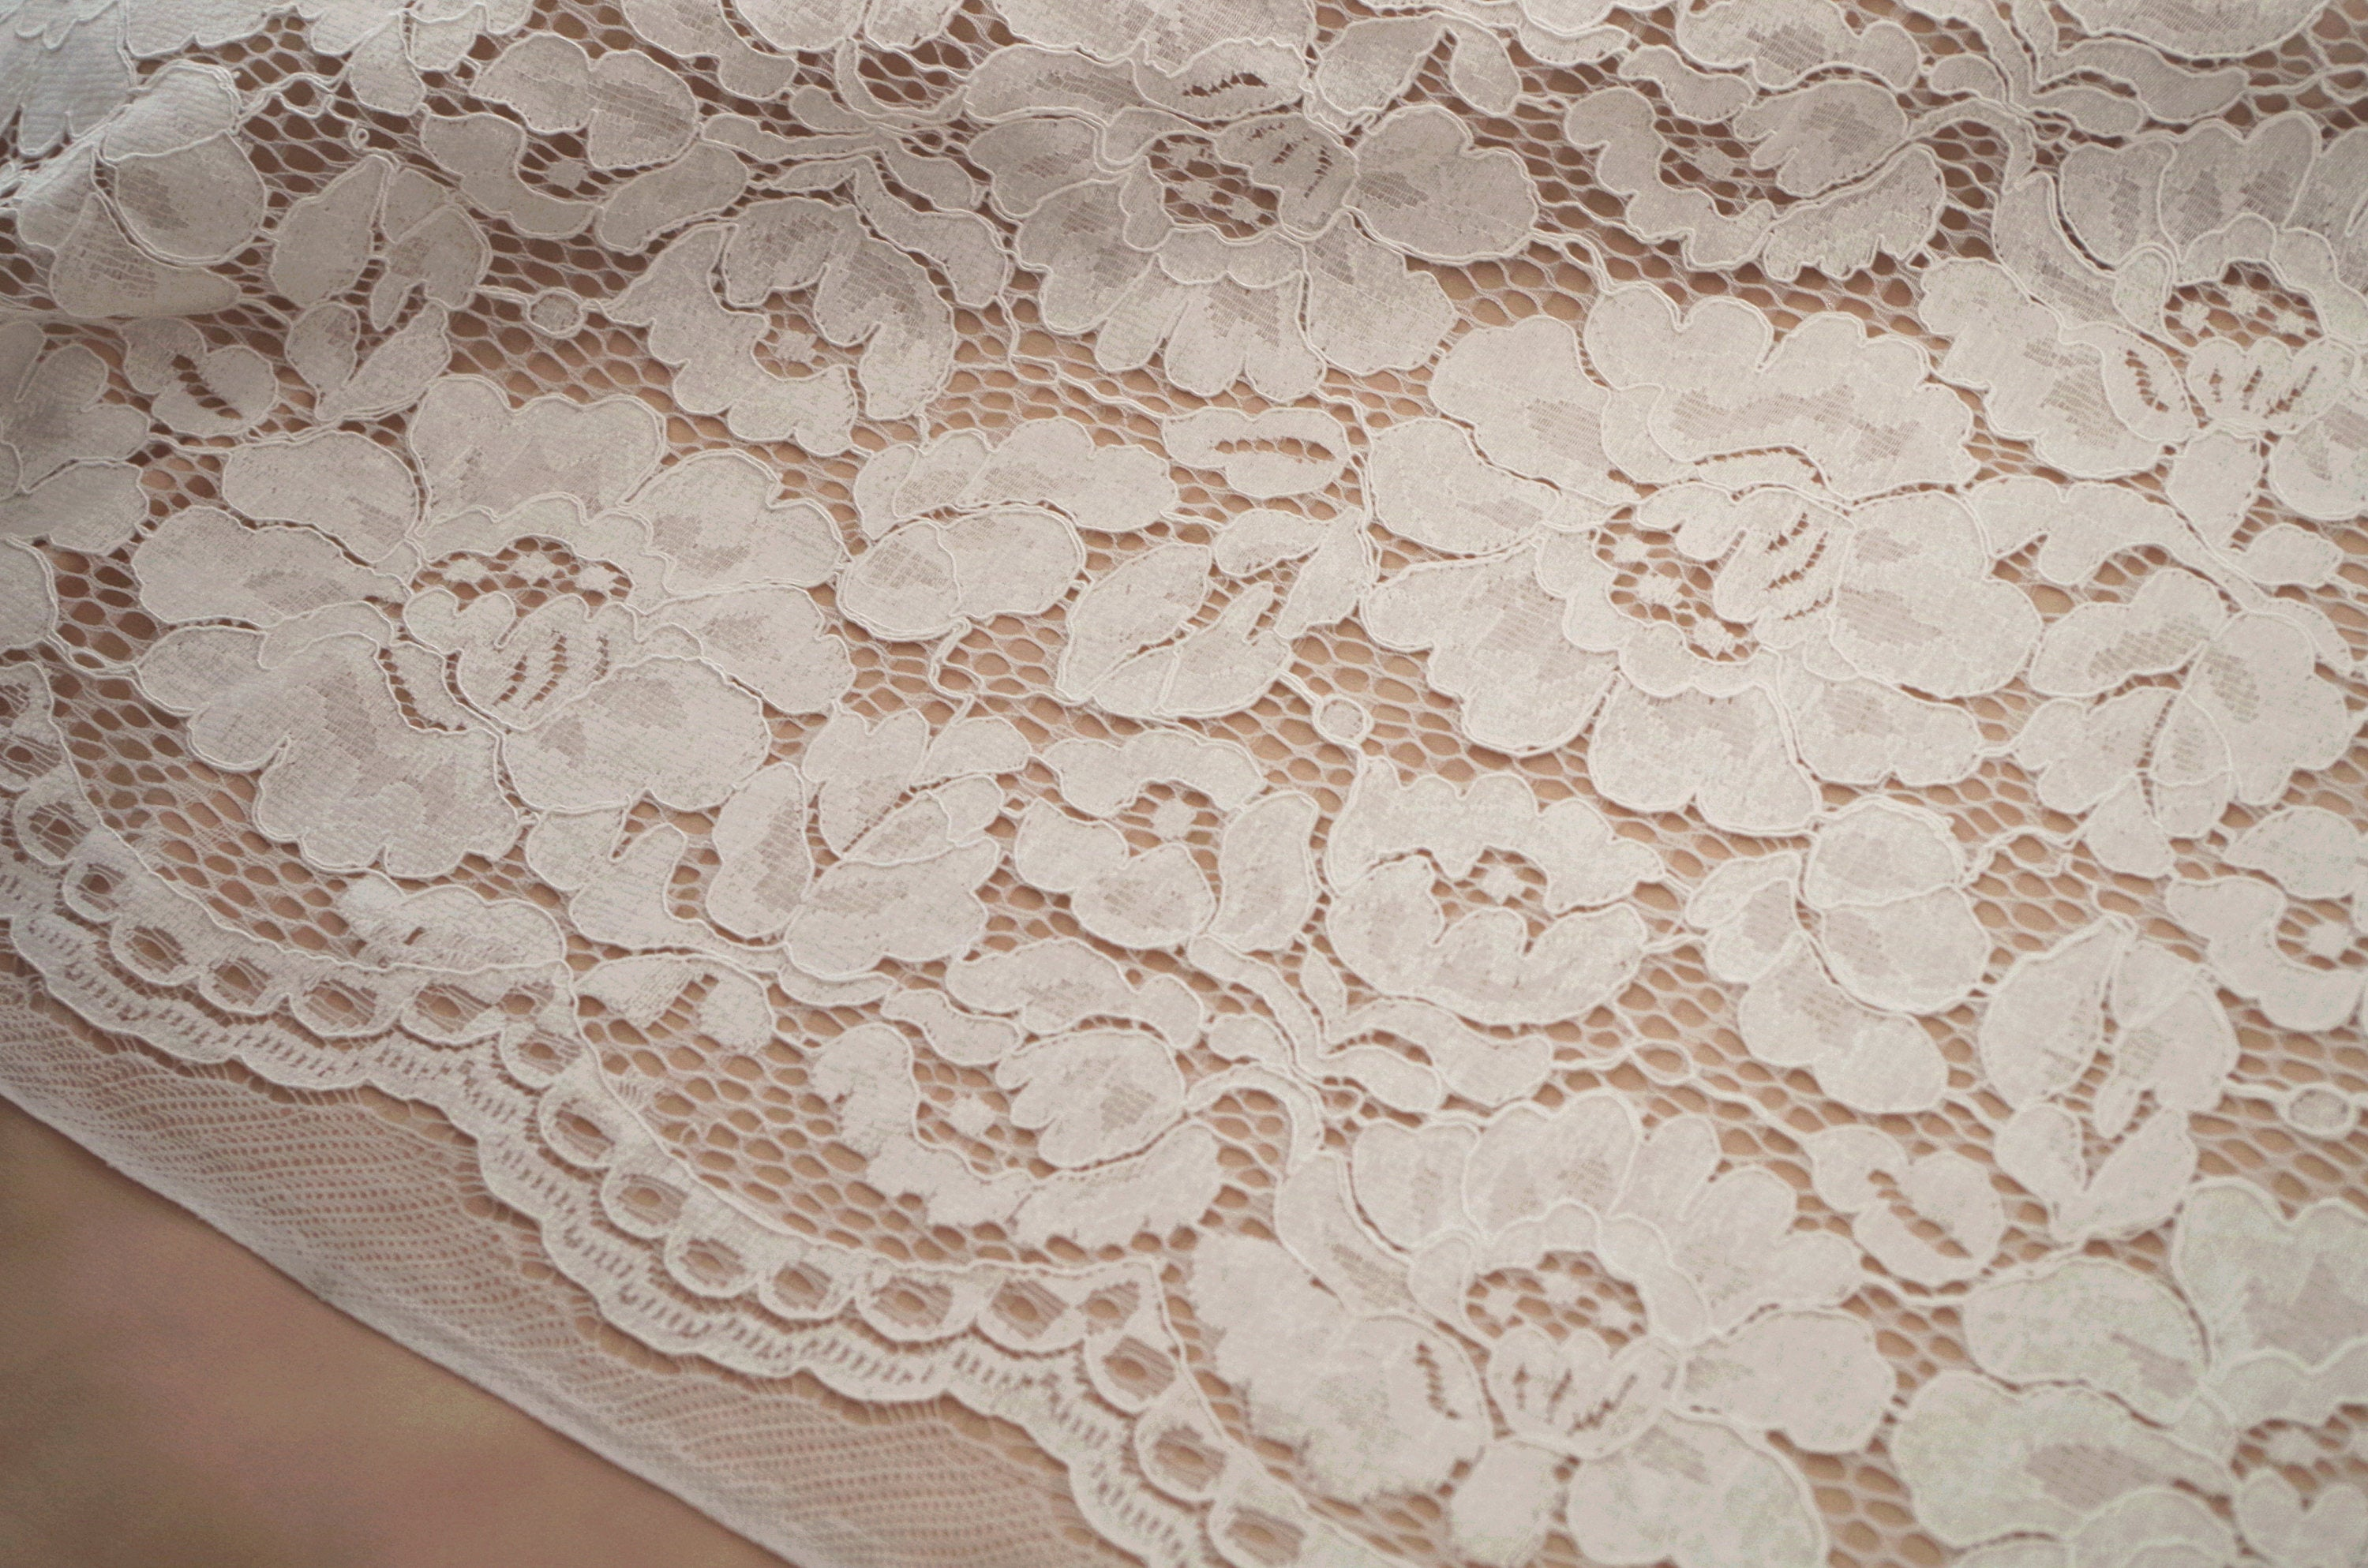 ivory cord lace fabric with florals, bridal lace fabric, alencon lace fabric, cord lace fabric with peonies